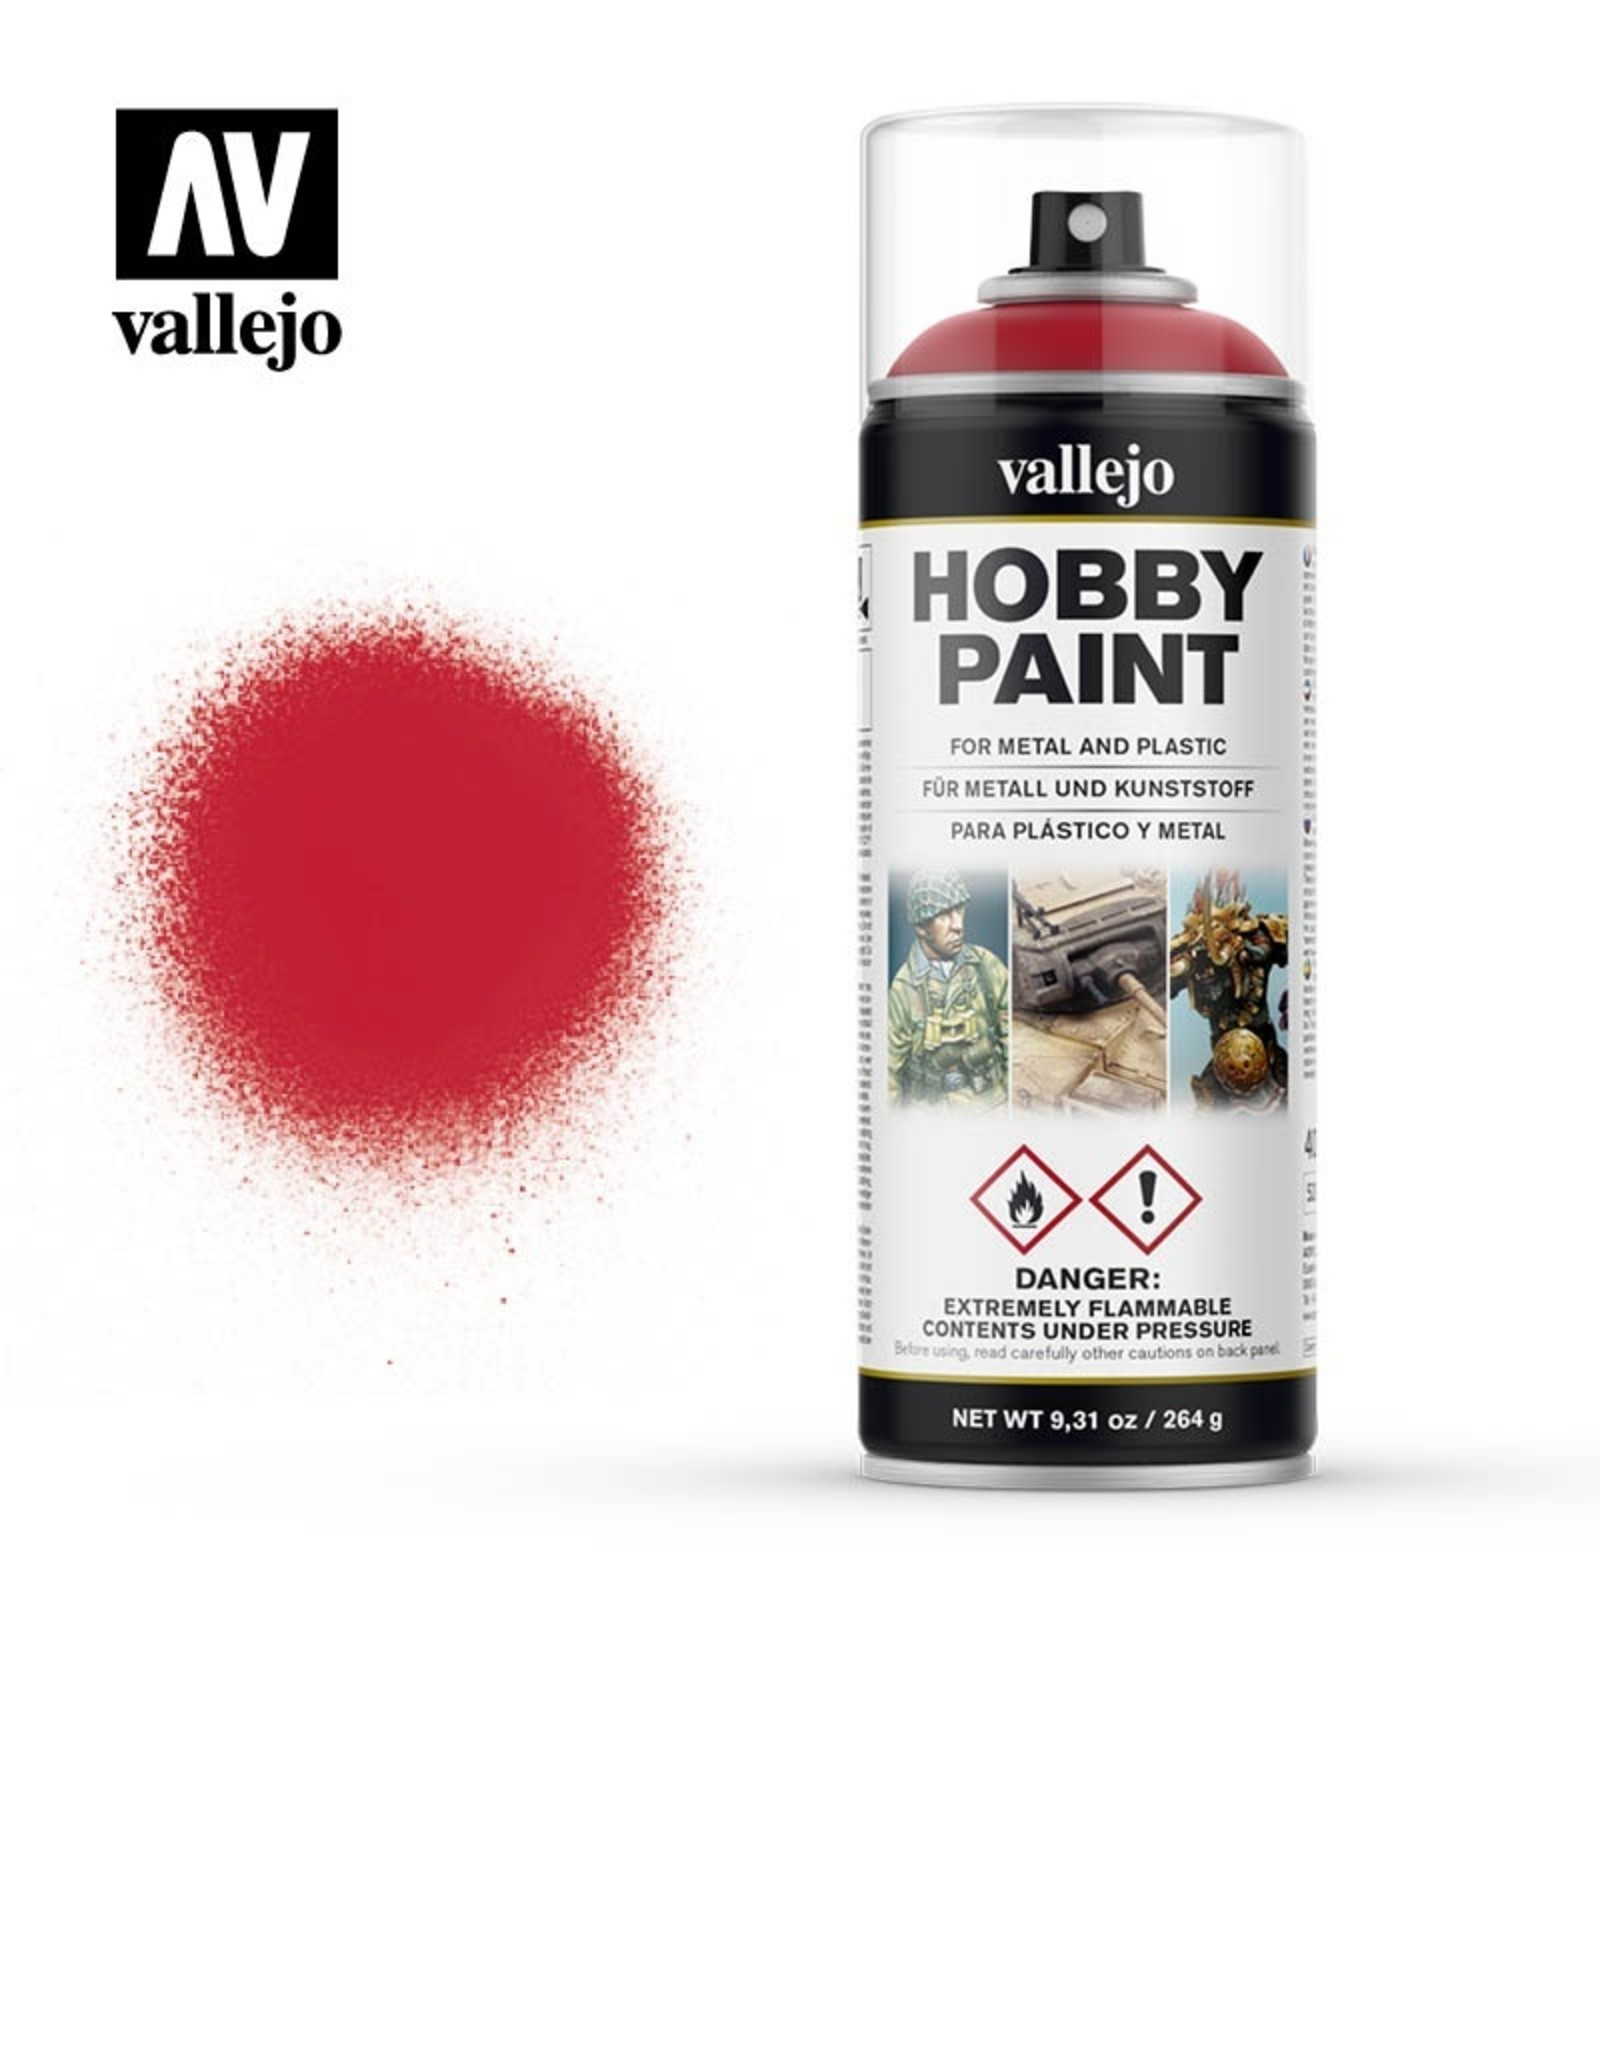 Vallejo Bloody Red spray paint